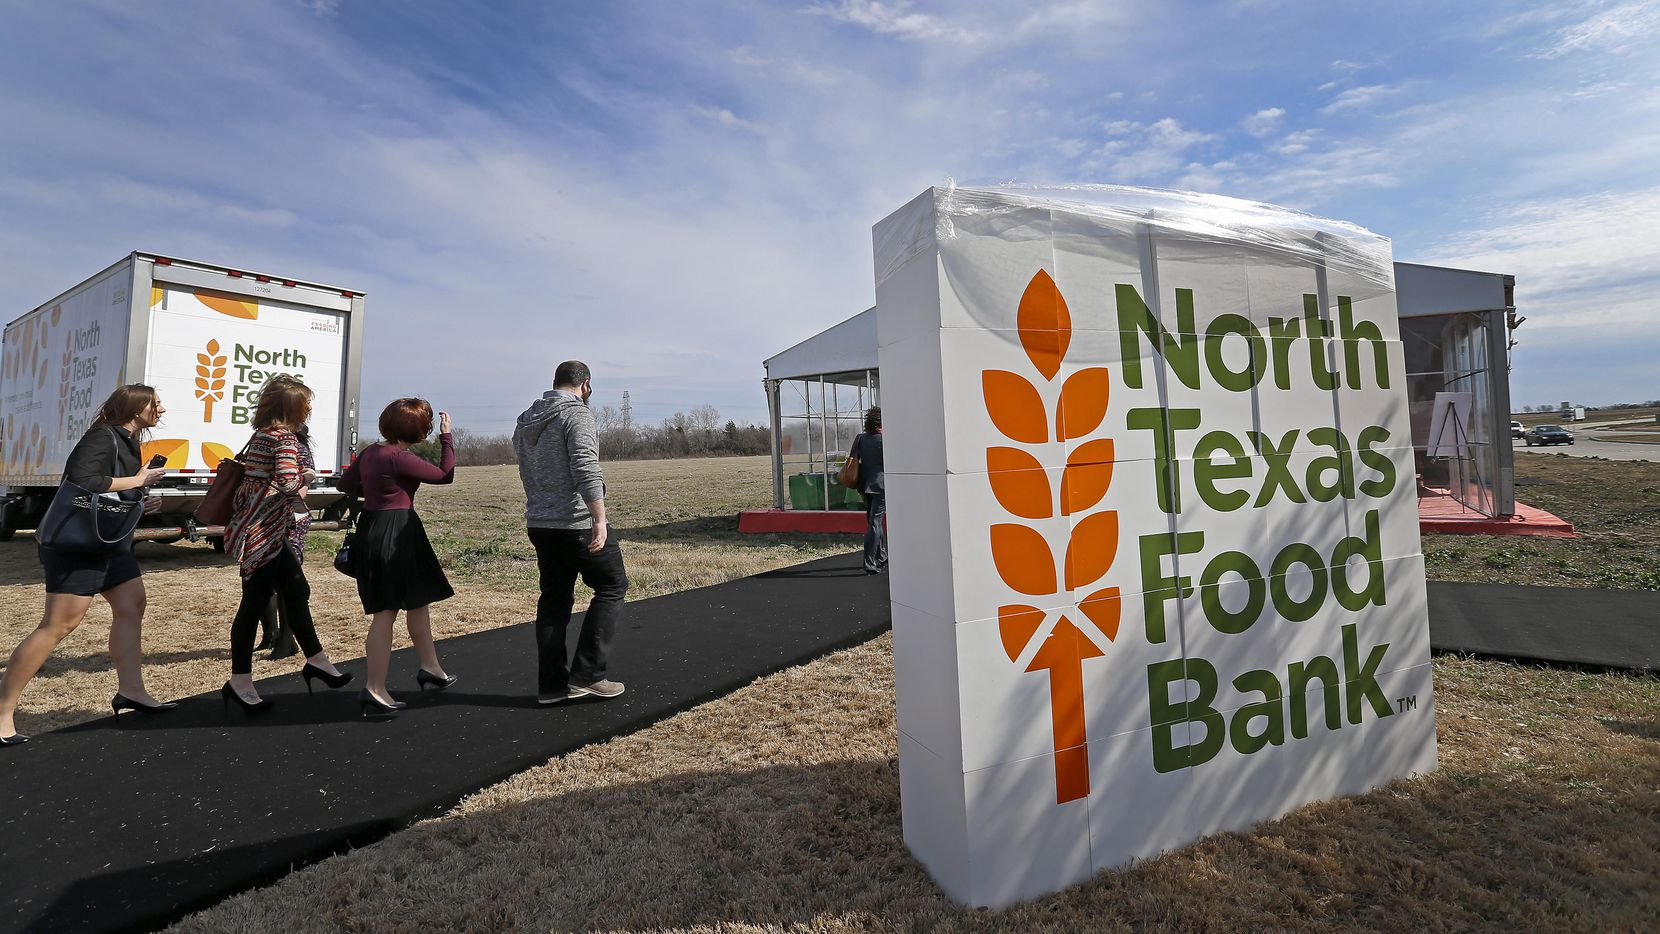 North Texas Food Bank reparte despensas para familias con niños este verano. (Staff Photographer/Jae S. Lee)